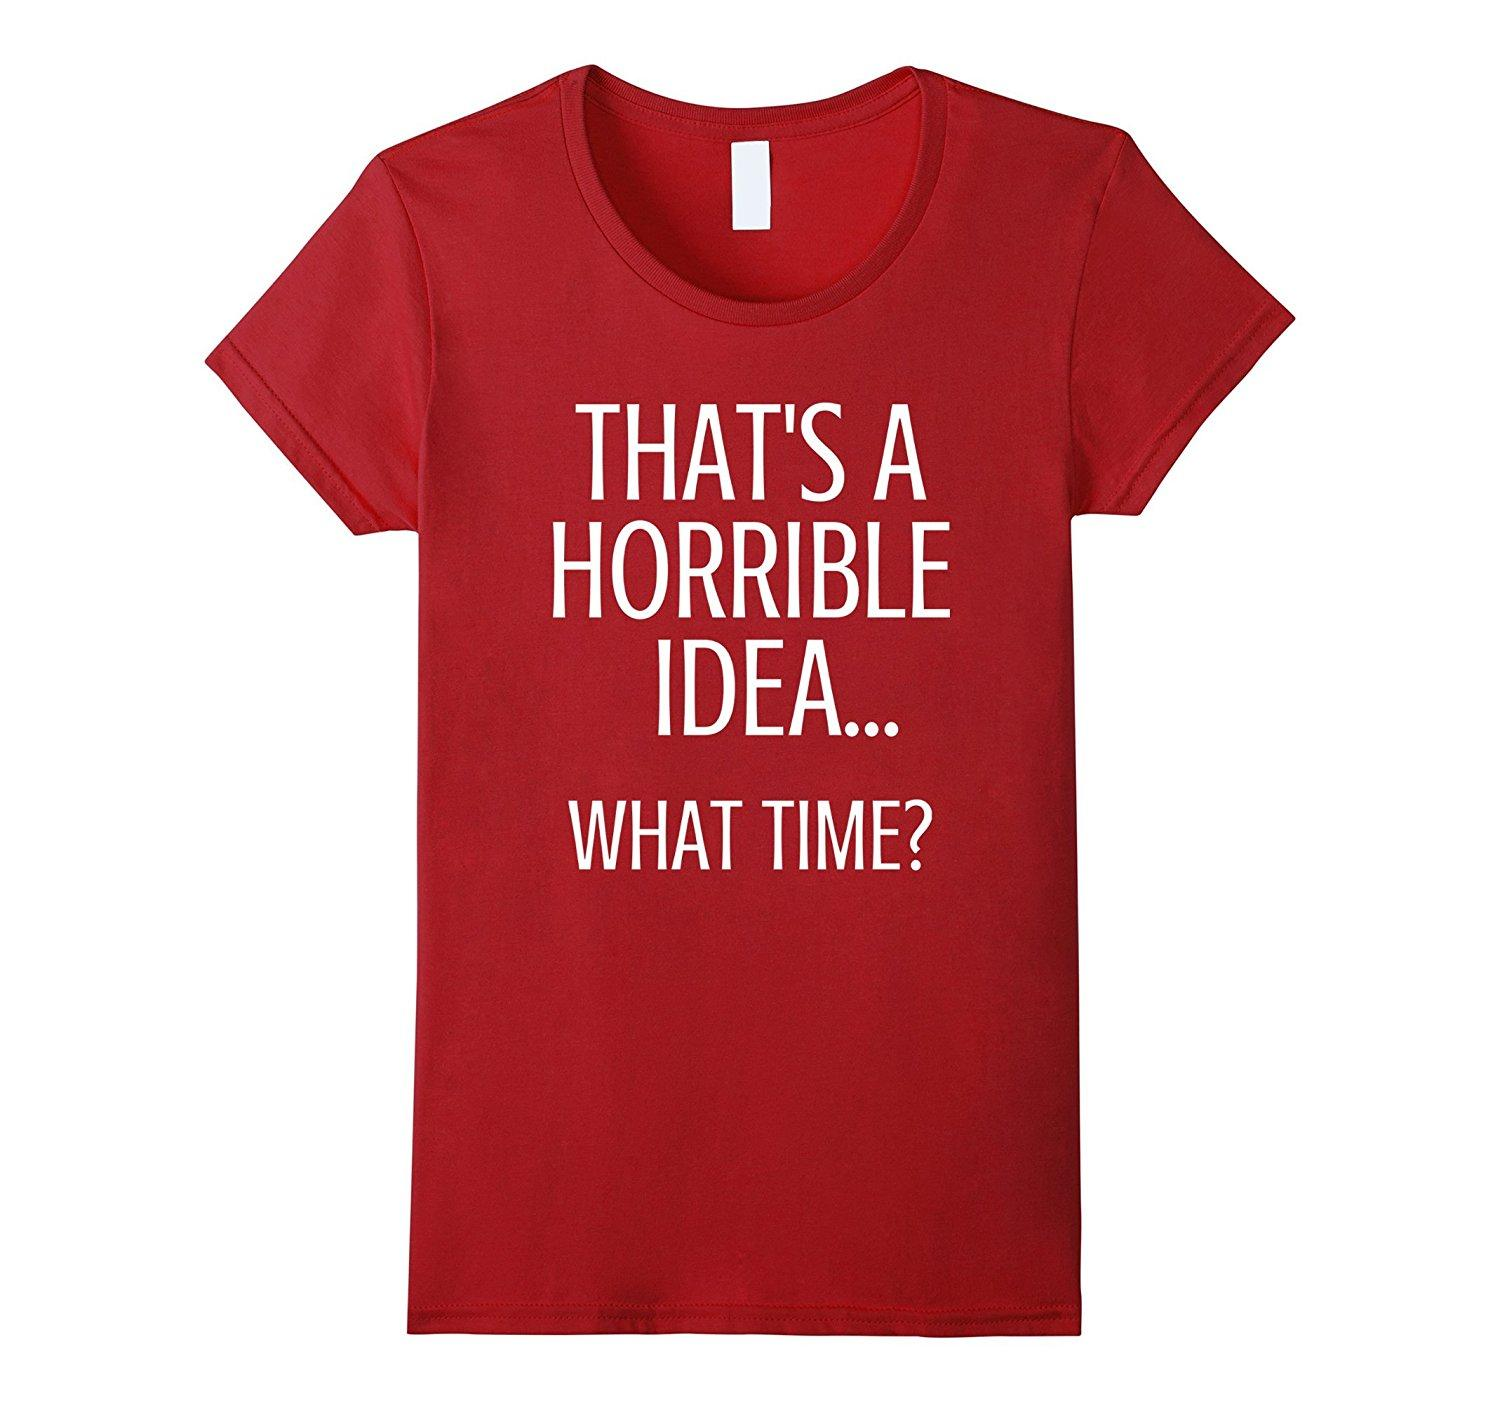 8d112857 Women's Tee That's A Horrible Idea What Time Funny Sarcastic T-shirt  Fashion Short Sleeve Women's T Shirt Discount Girl T Shirts. Store-wide  Discount